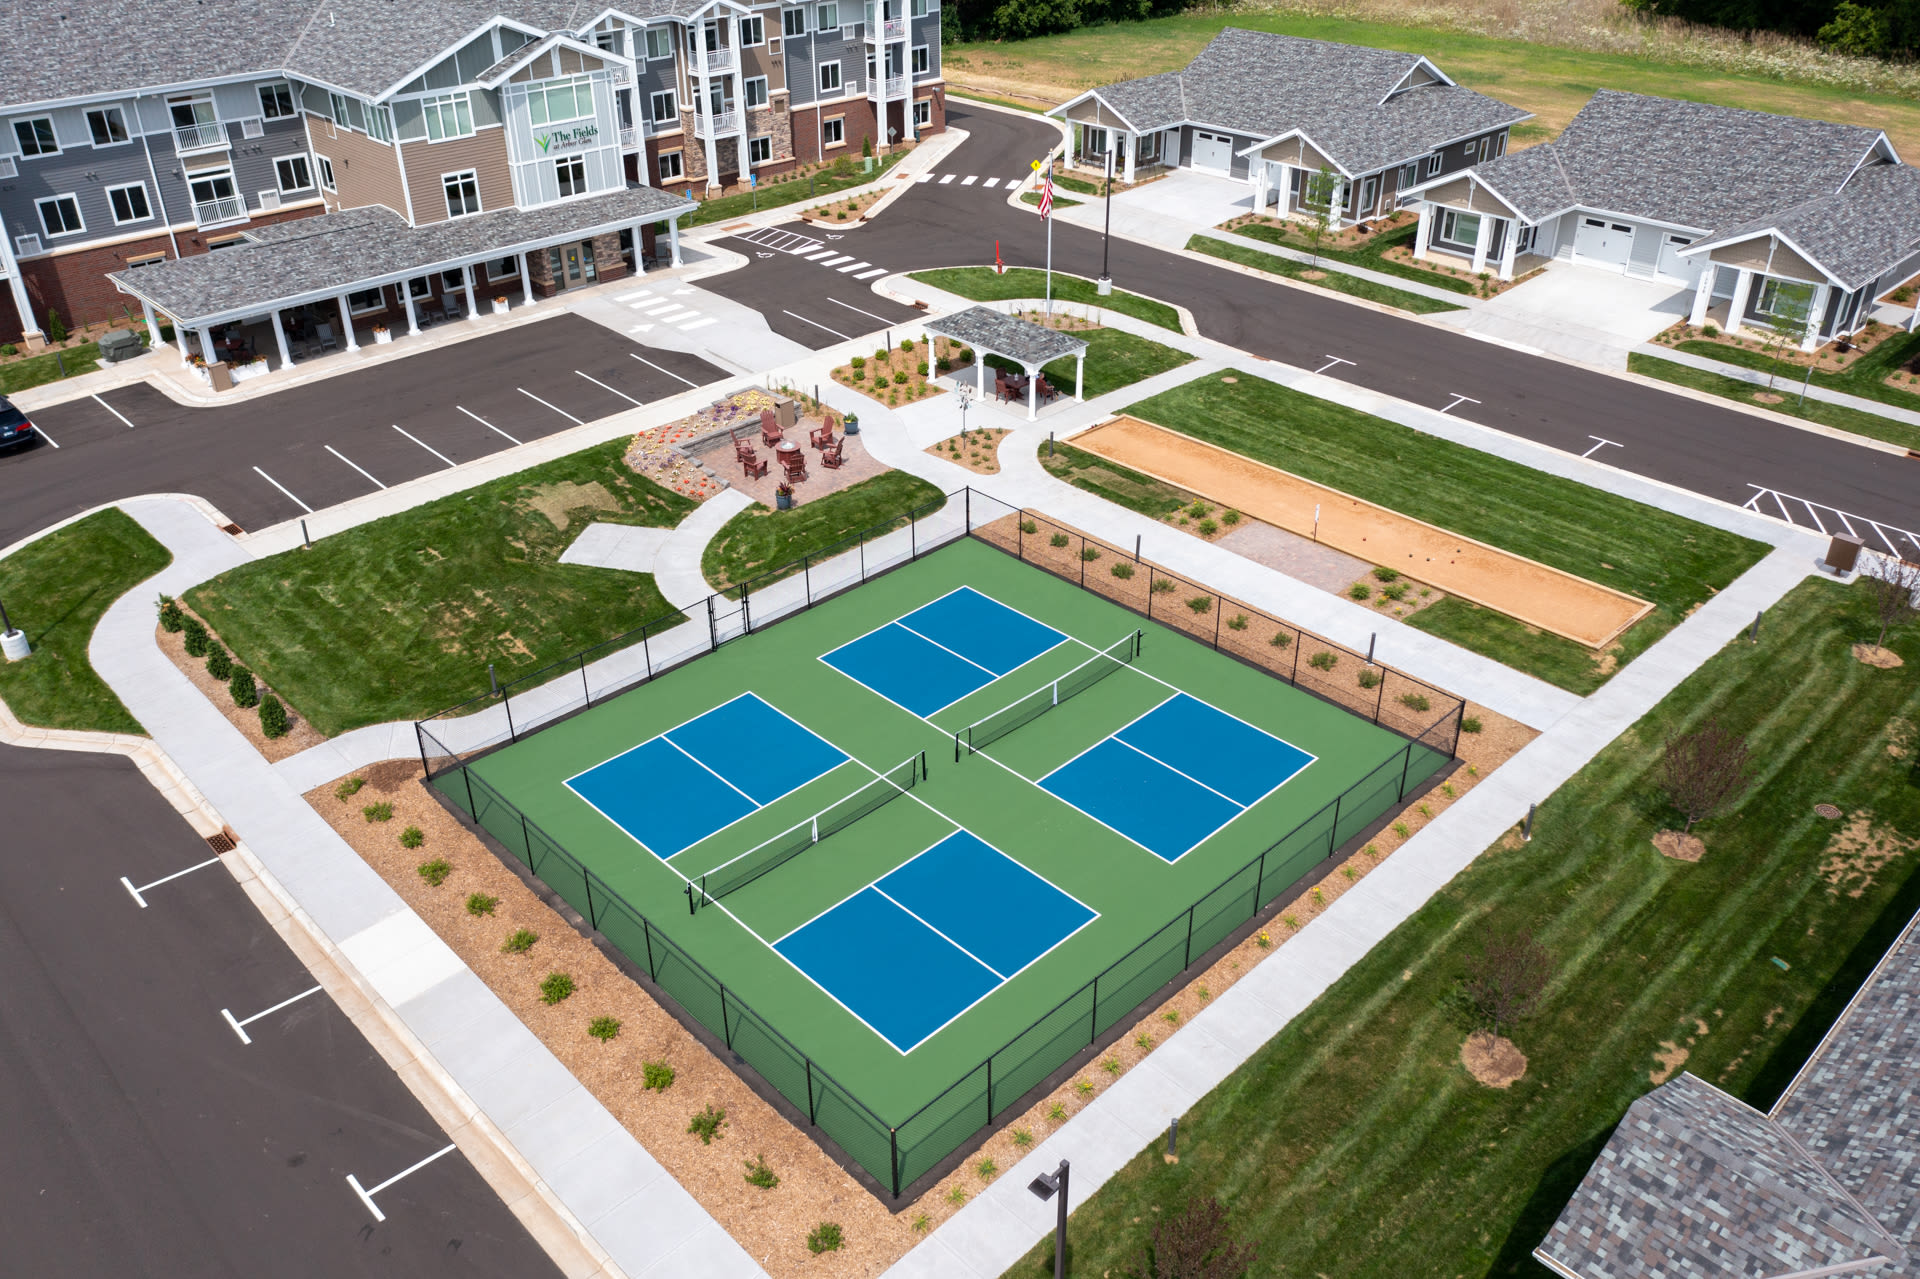 Aerial image showing tennis courts and parking at The Fields at Arbor Glen in Lake Elmo, Minnesota